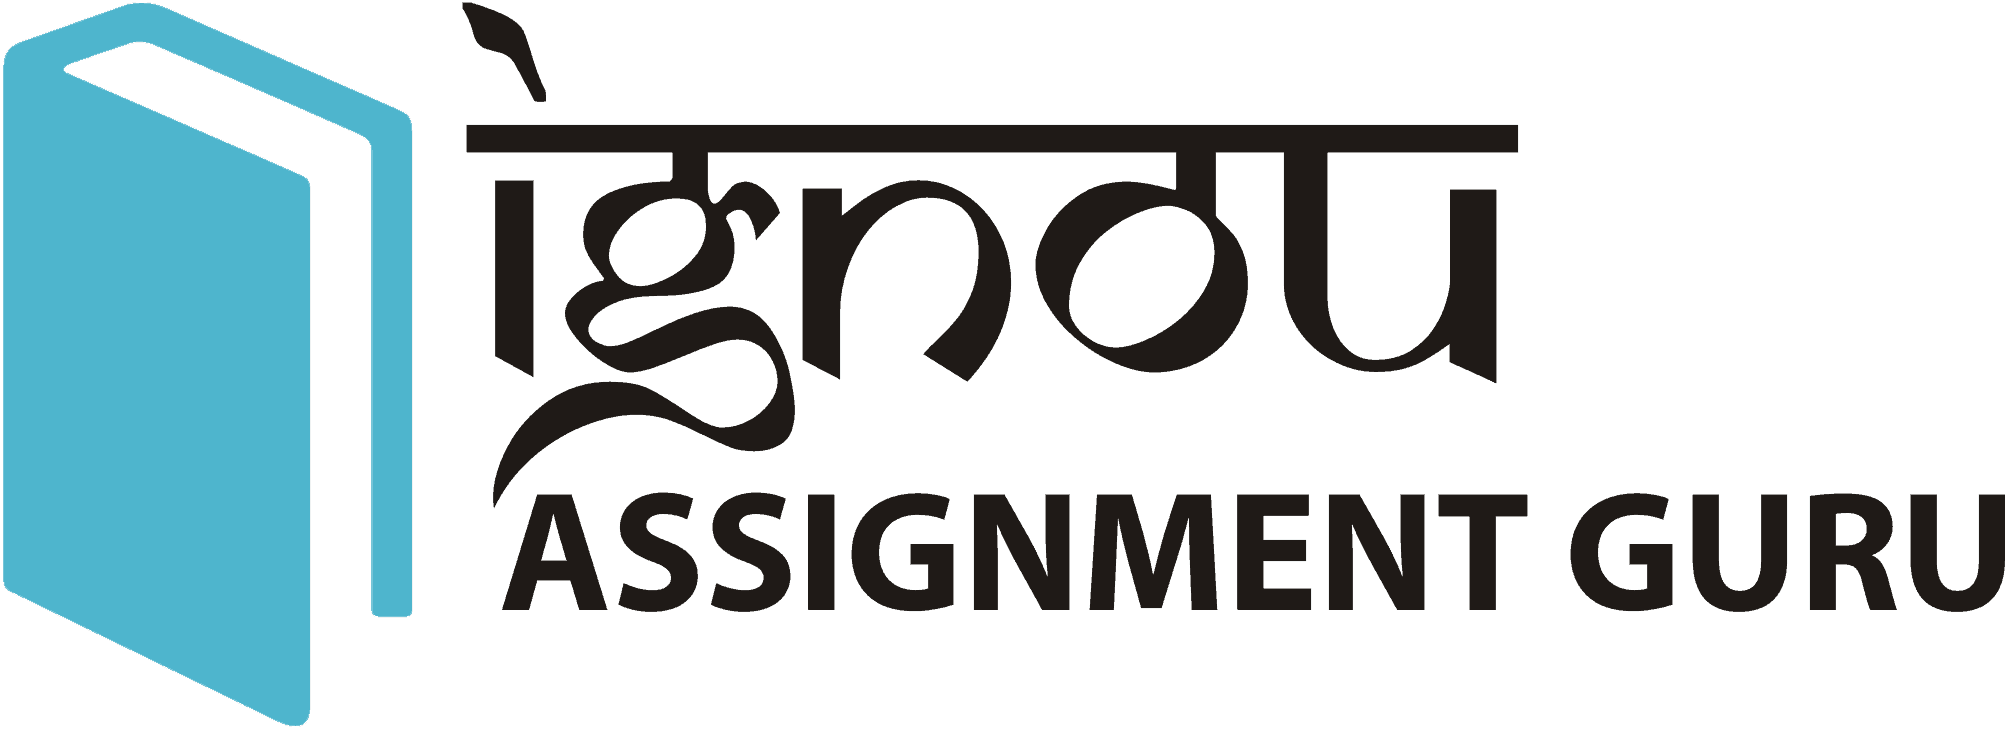 IGNOU SOLVED ASSIGNMENT GURU BA MA BDP B.COM M.COM BCA MCA BBA MBA B.ED B.SC M.SC SOLUTION 2019-20 July 2019 January 2020